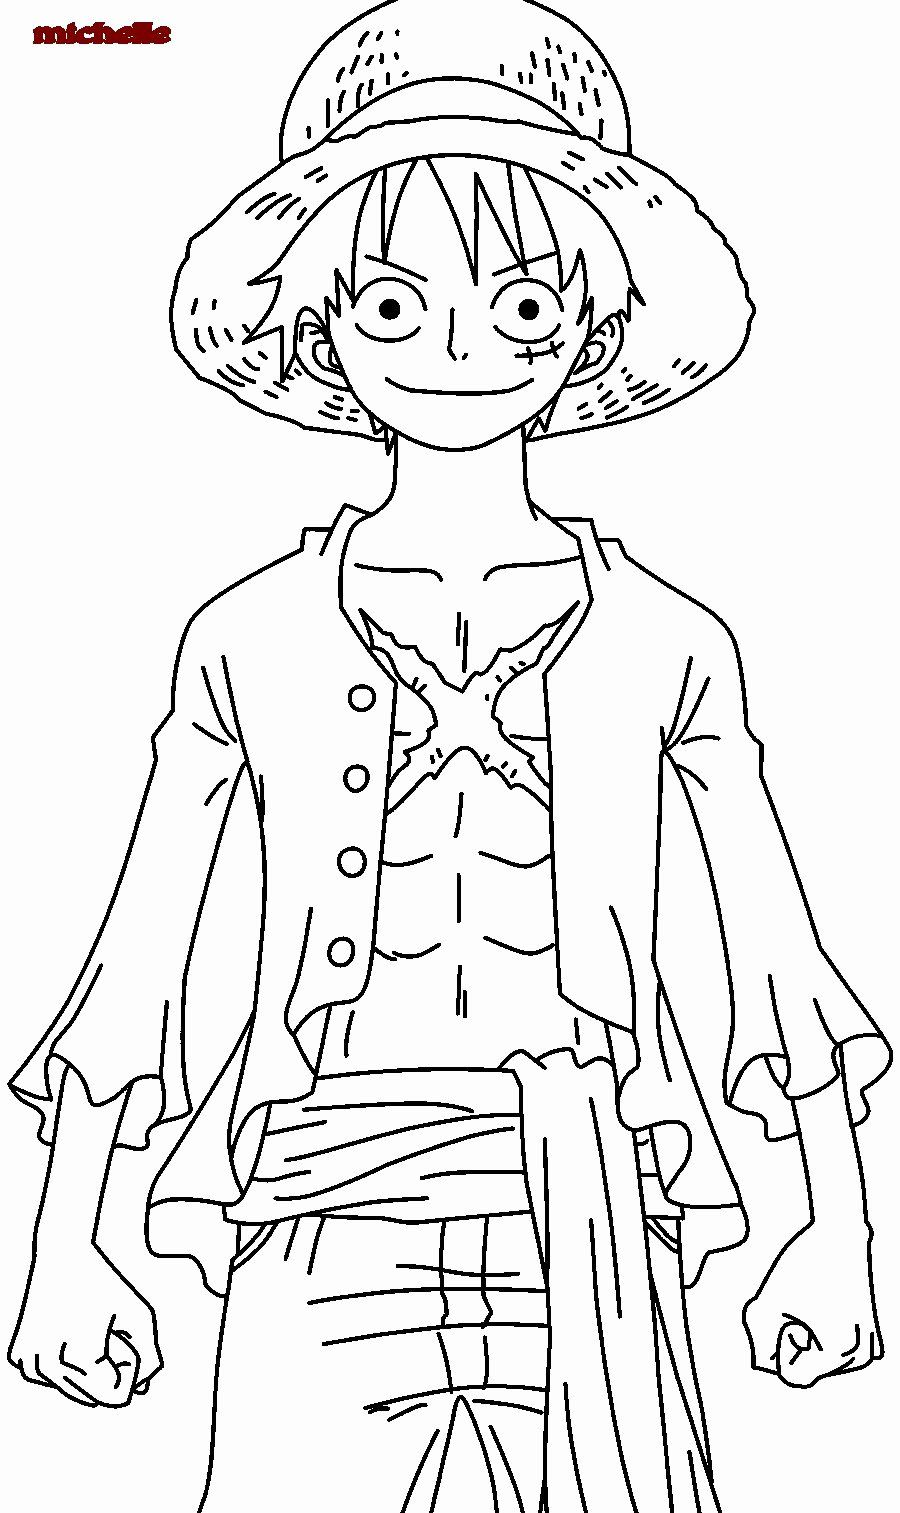 Pin On Anime Coloring Pages Ideas Printable [ 1513 x 900 Pixel ]